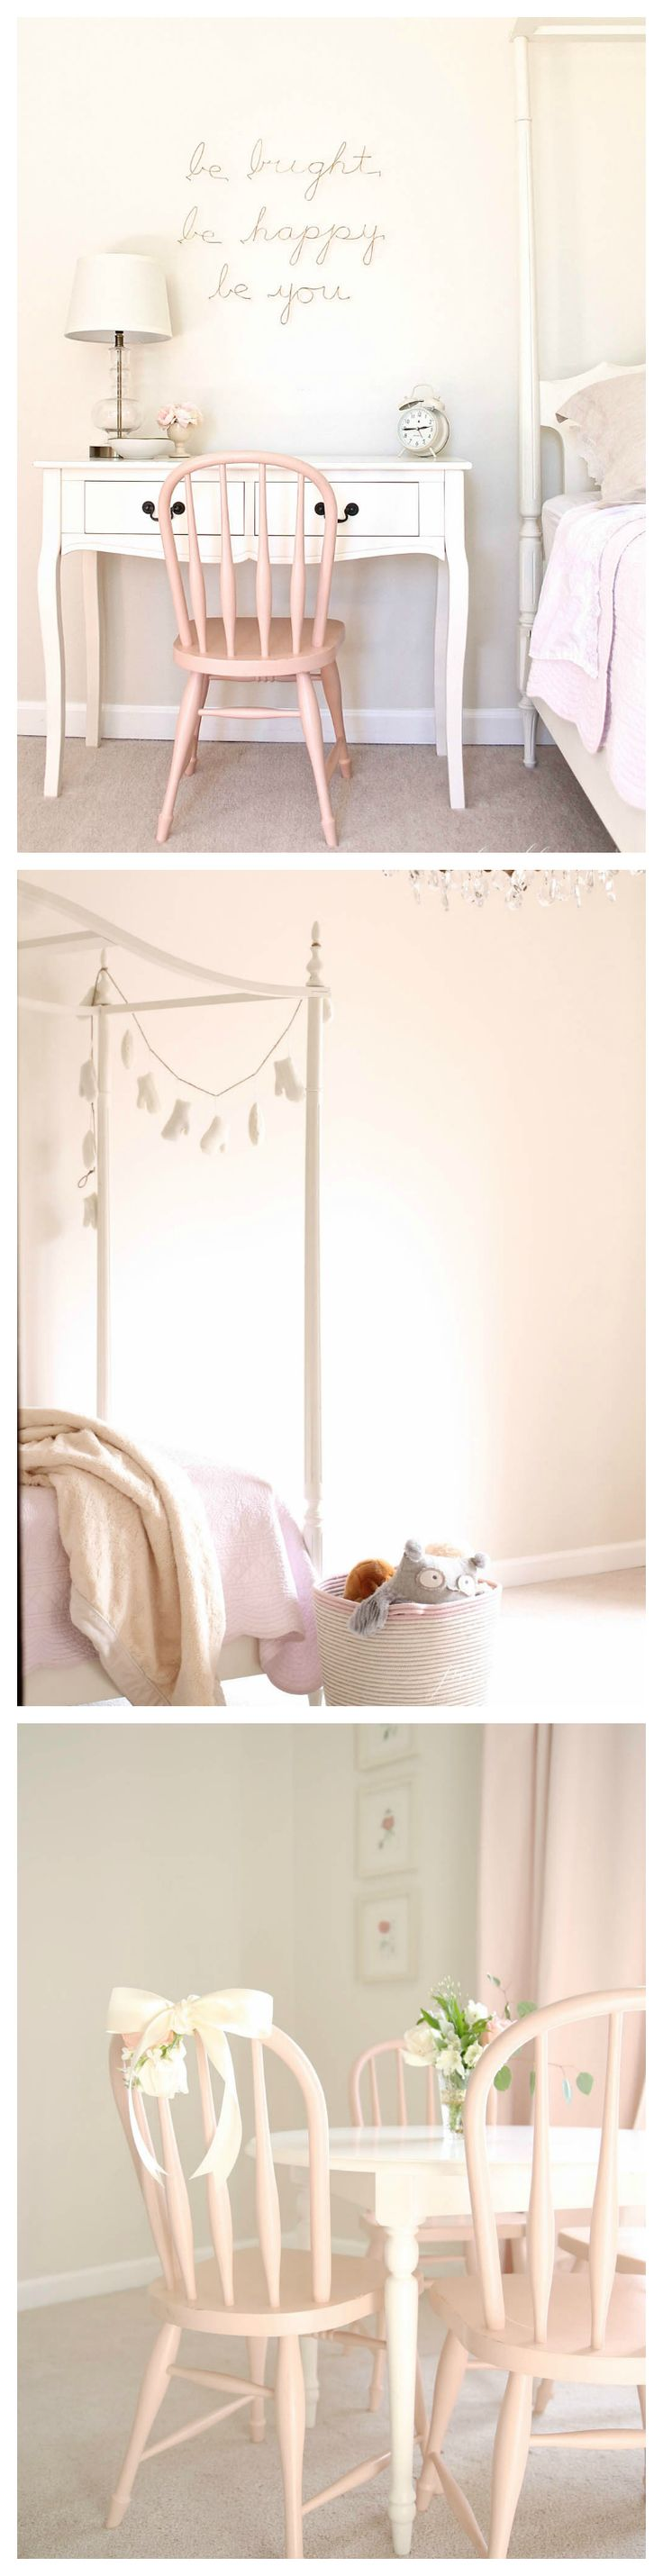 Some snaps of Adalyn's bedroom progress! Find inspiration and tips for decorating your little girls room.